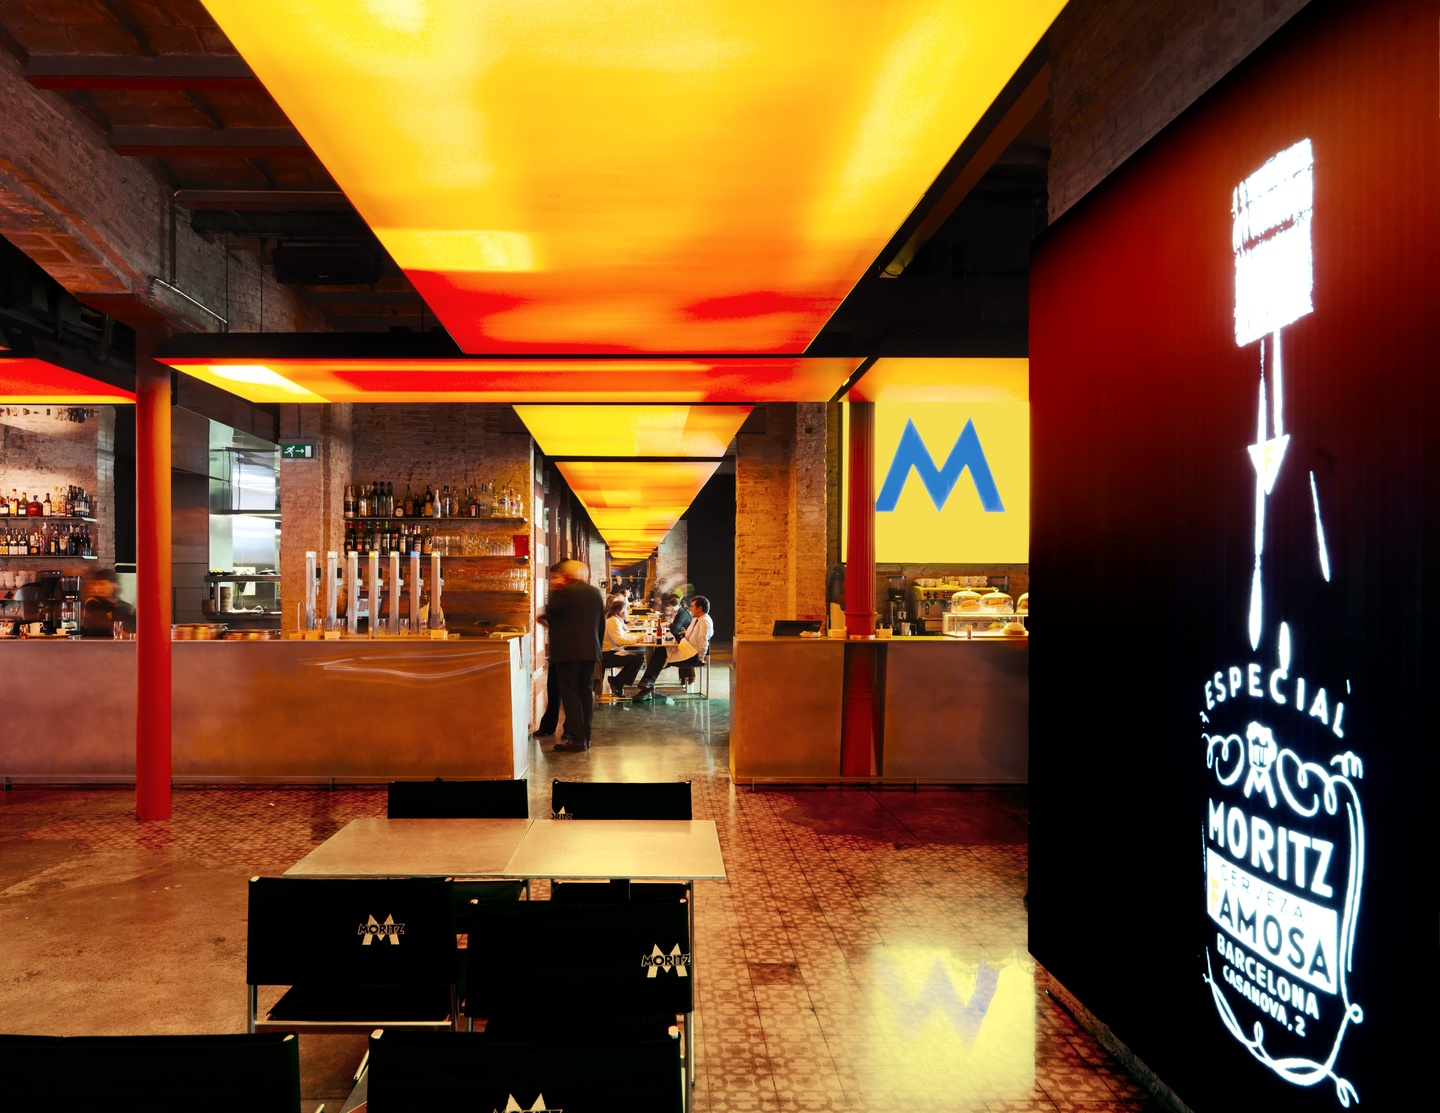 Barcelona Train station meeting rooms Restaurant Moritz Brewery - Brewery Space image 1